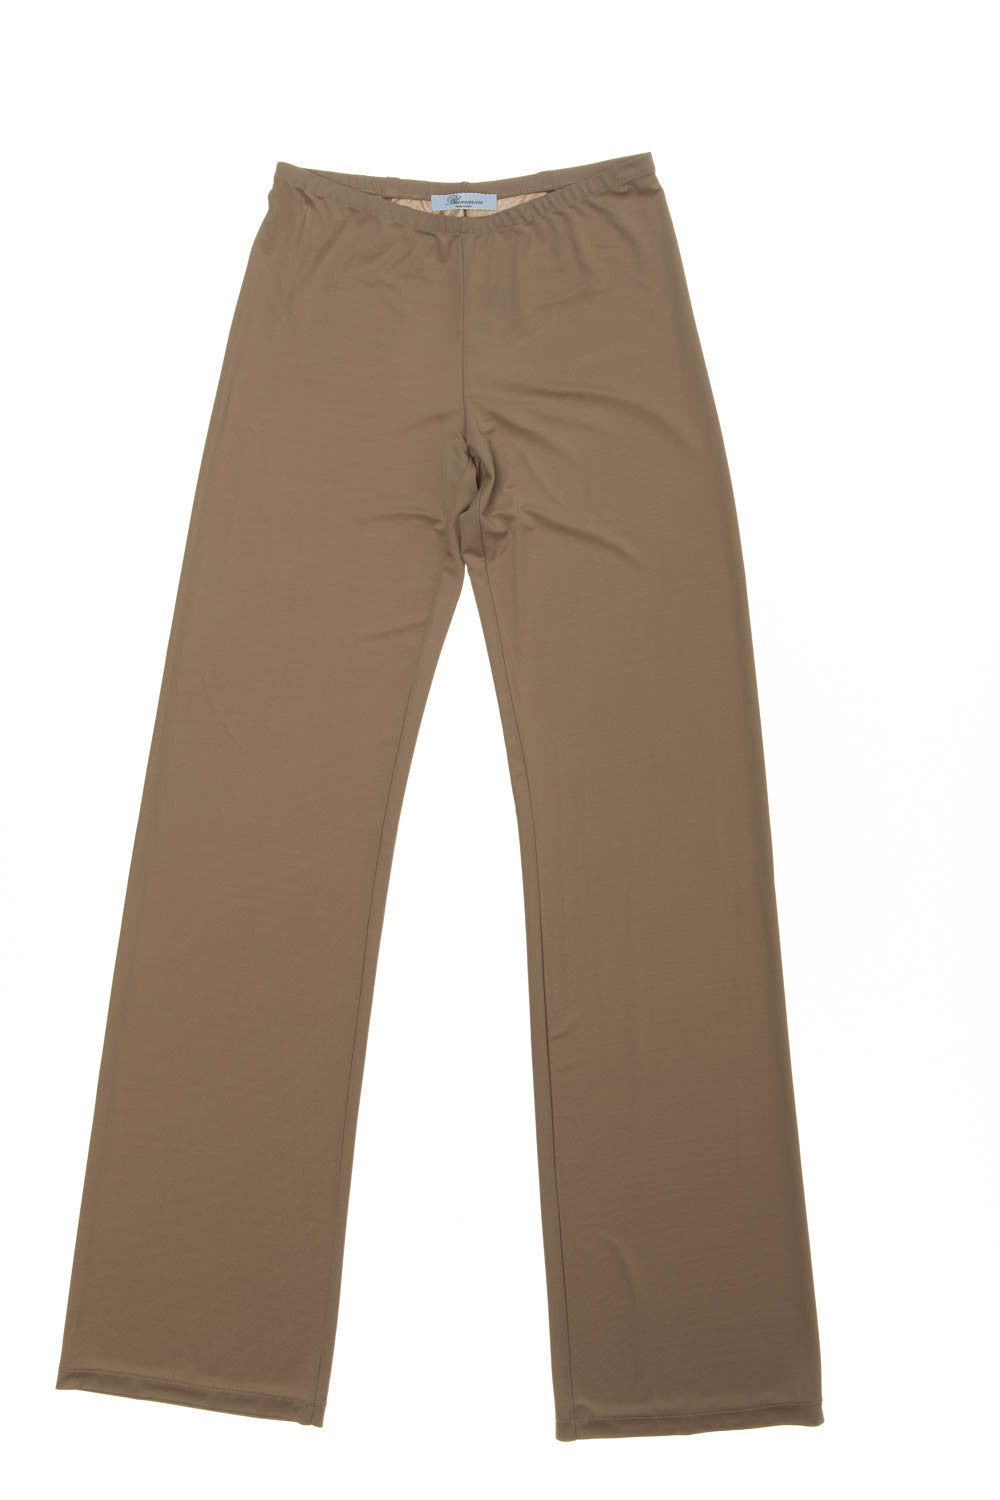 Blumarine - Tan Pants